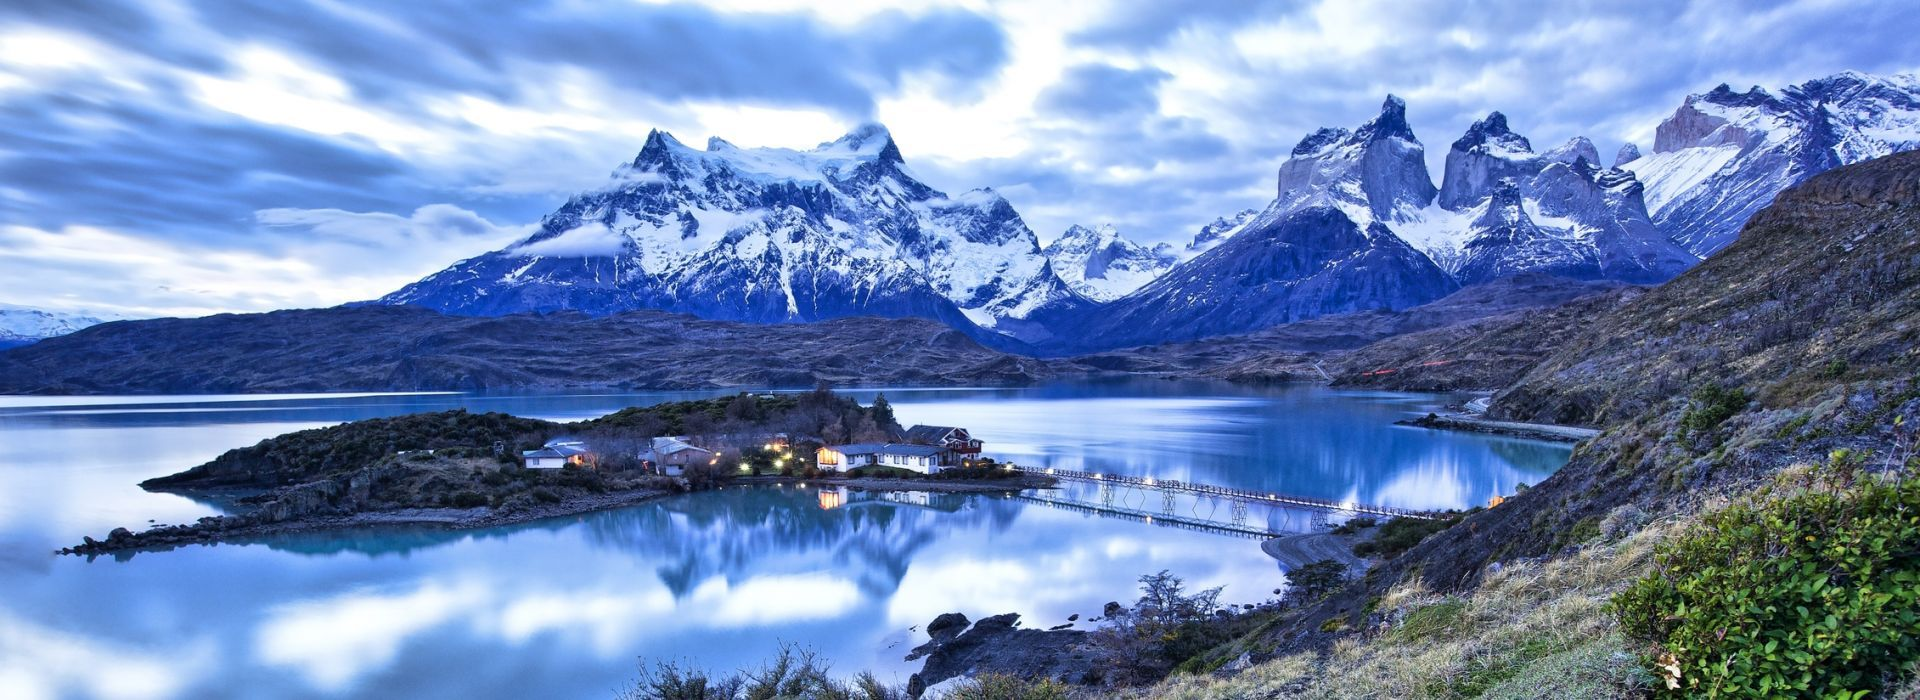 Getaways and short breaks Tours in Chile